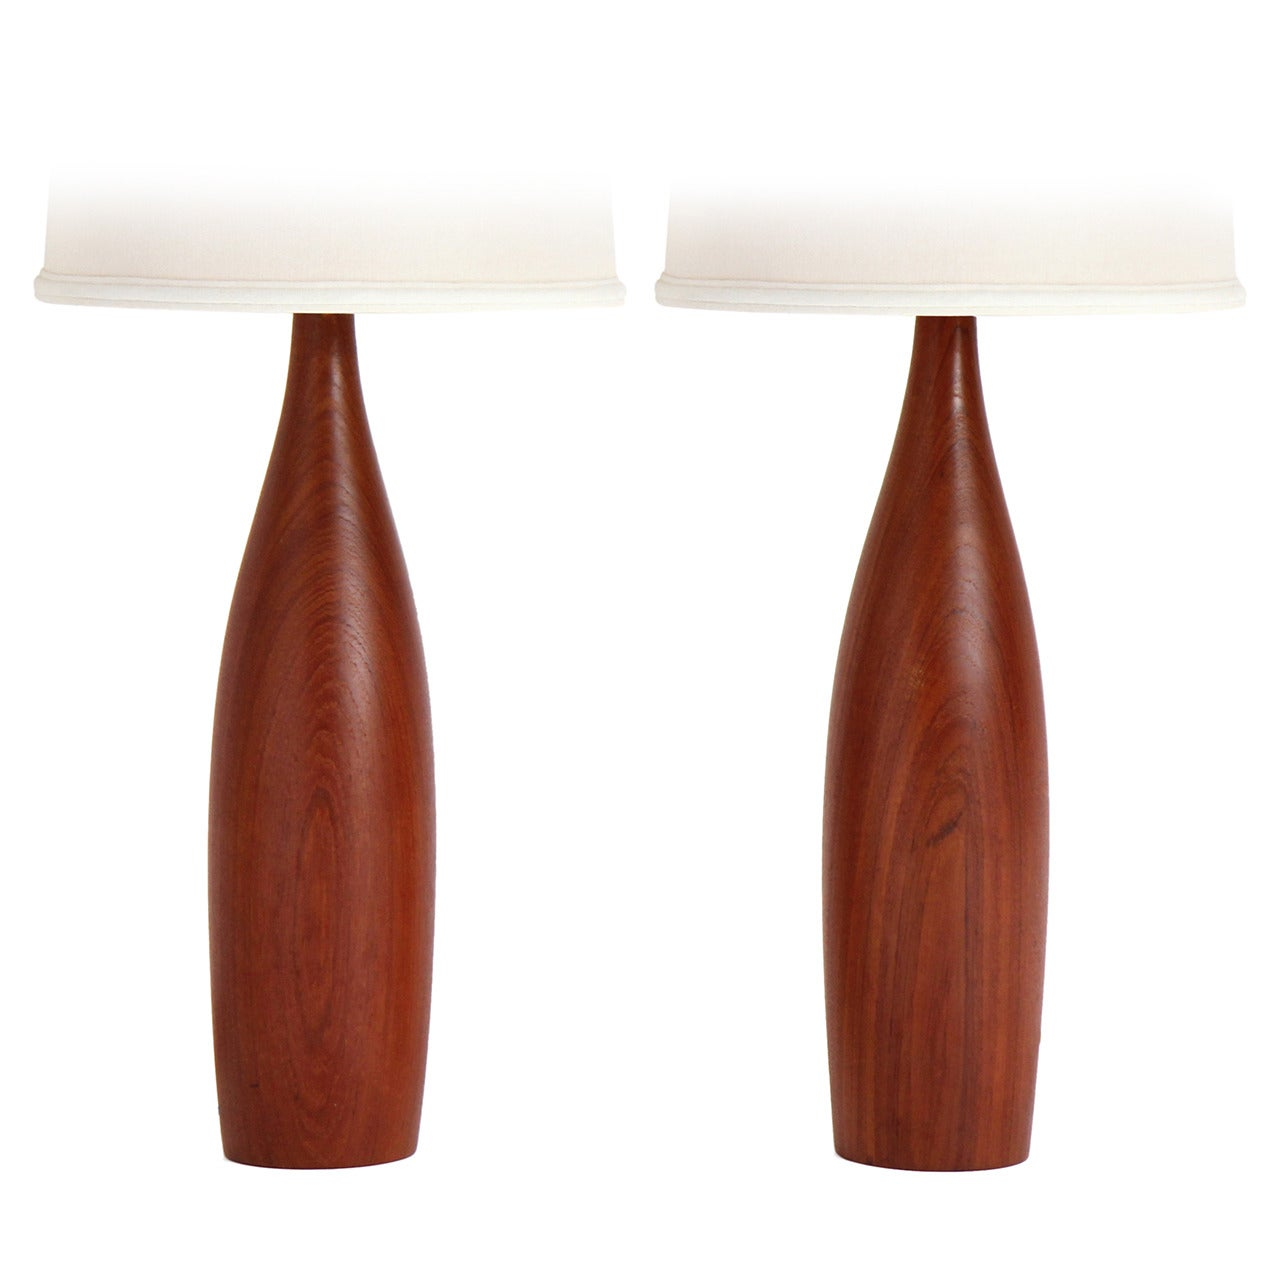 Danish Turned Teak Table Lamps